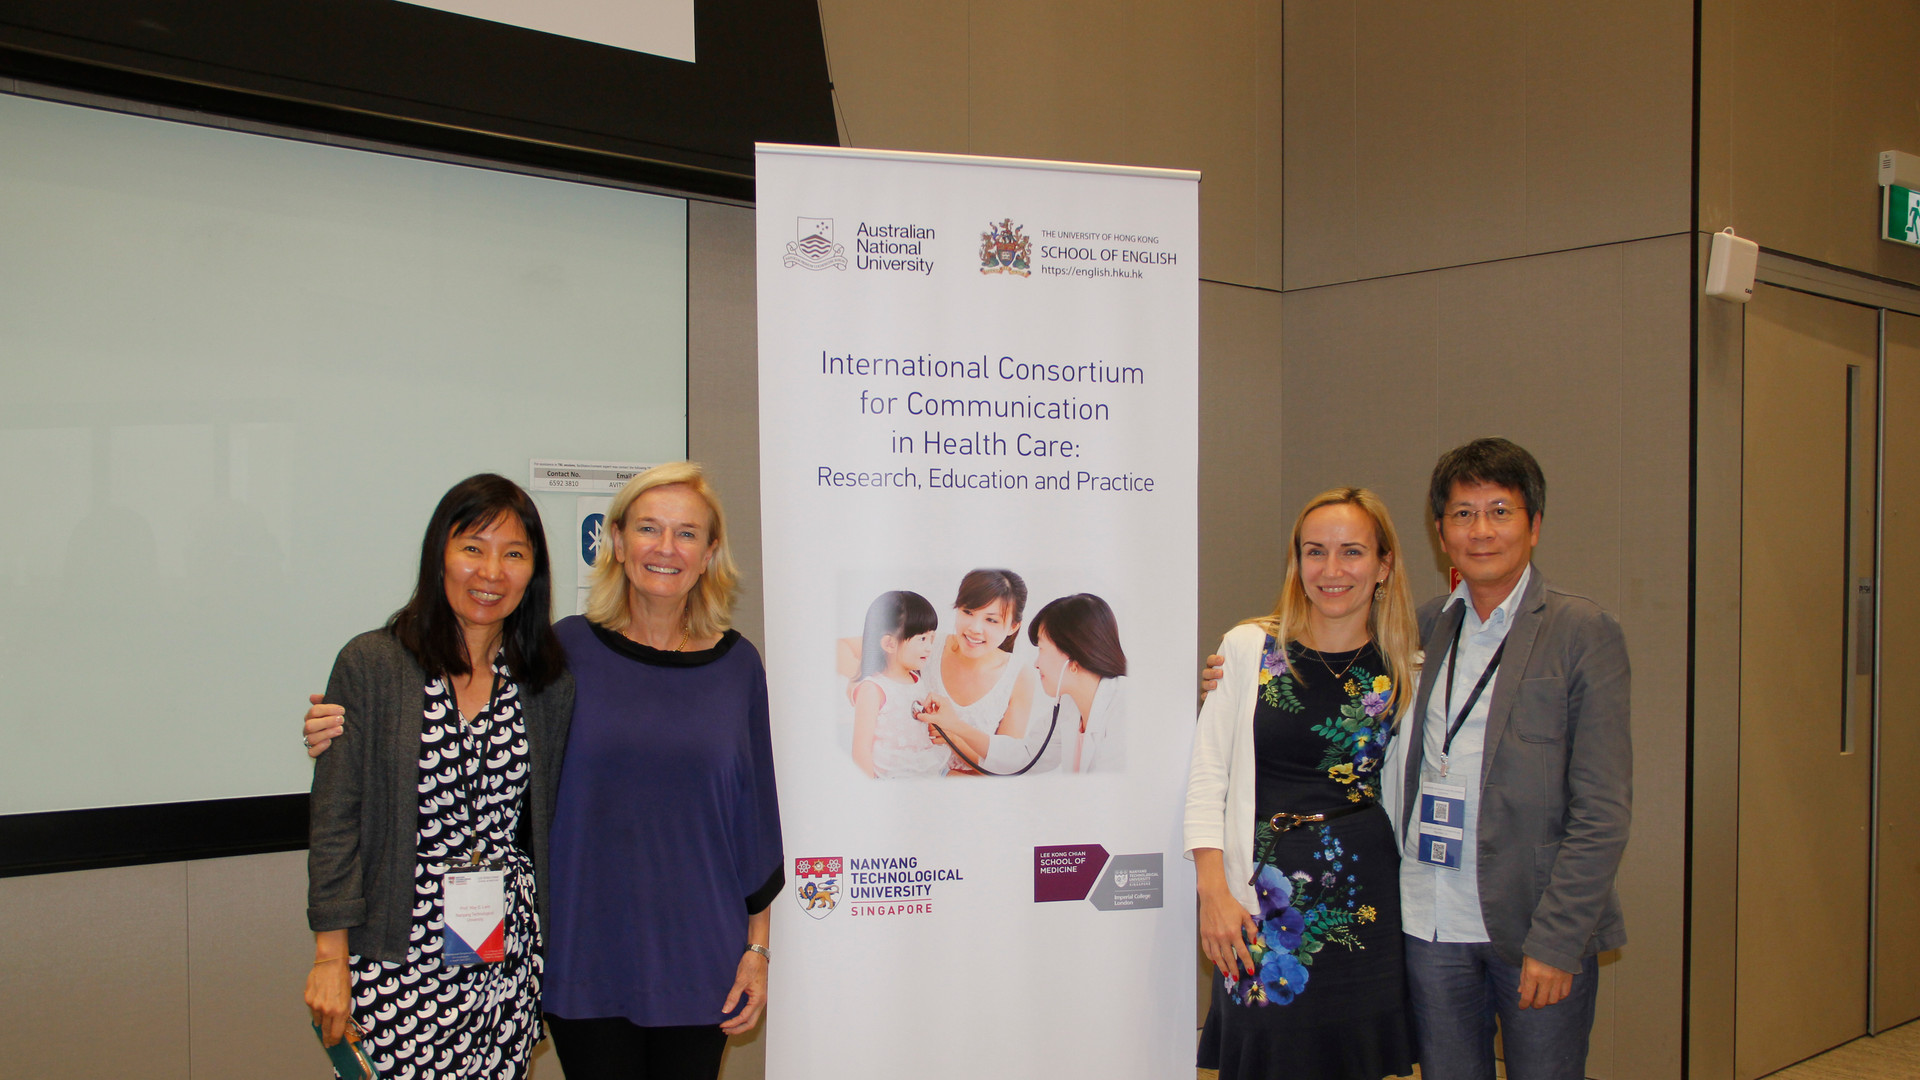 International Symposium on Communication in Health Care 2019